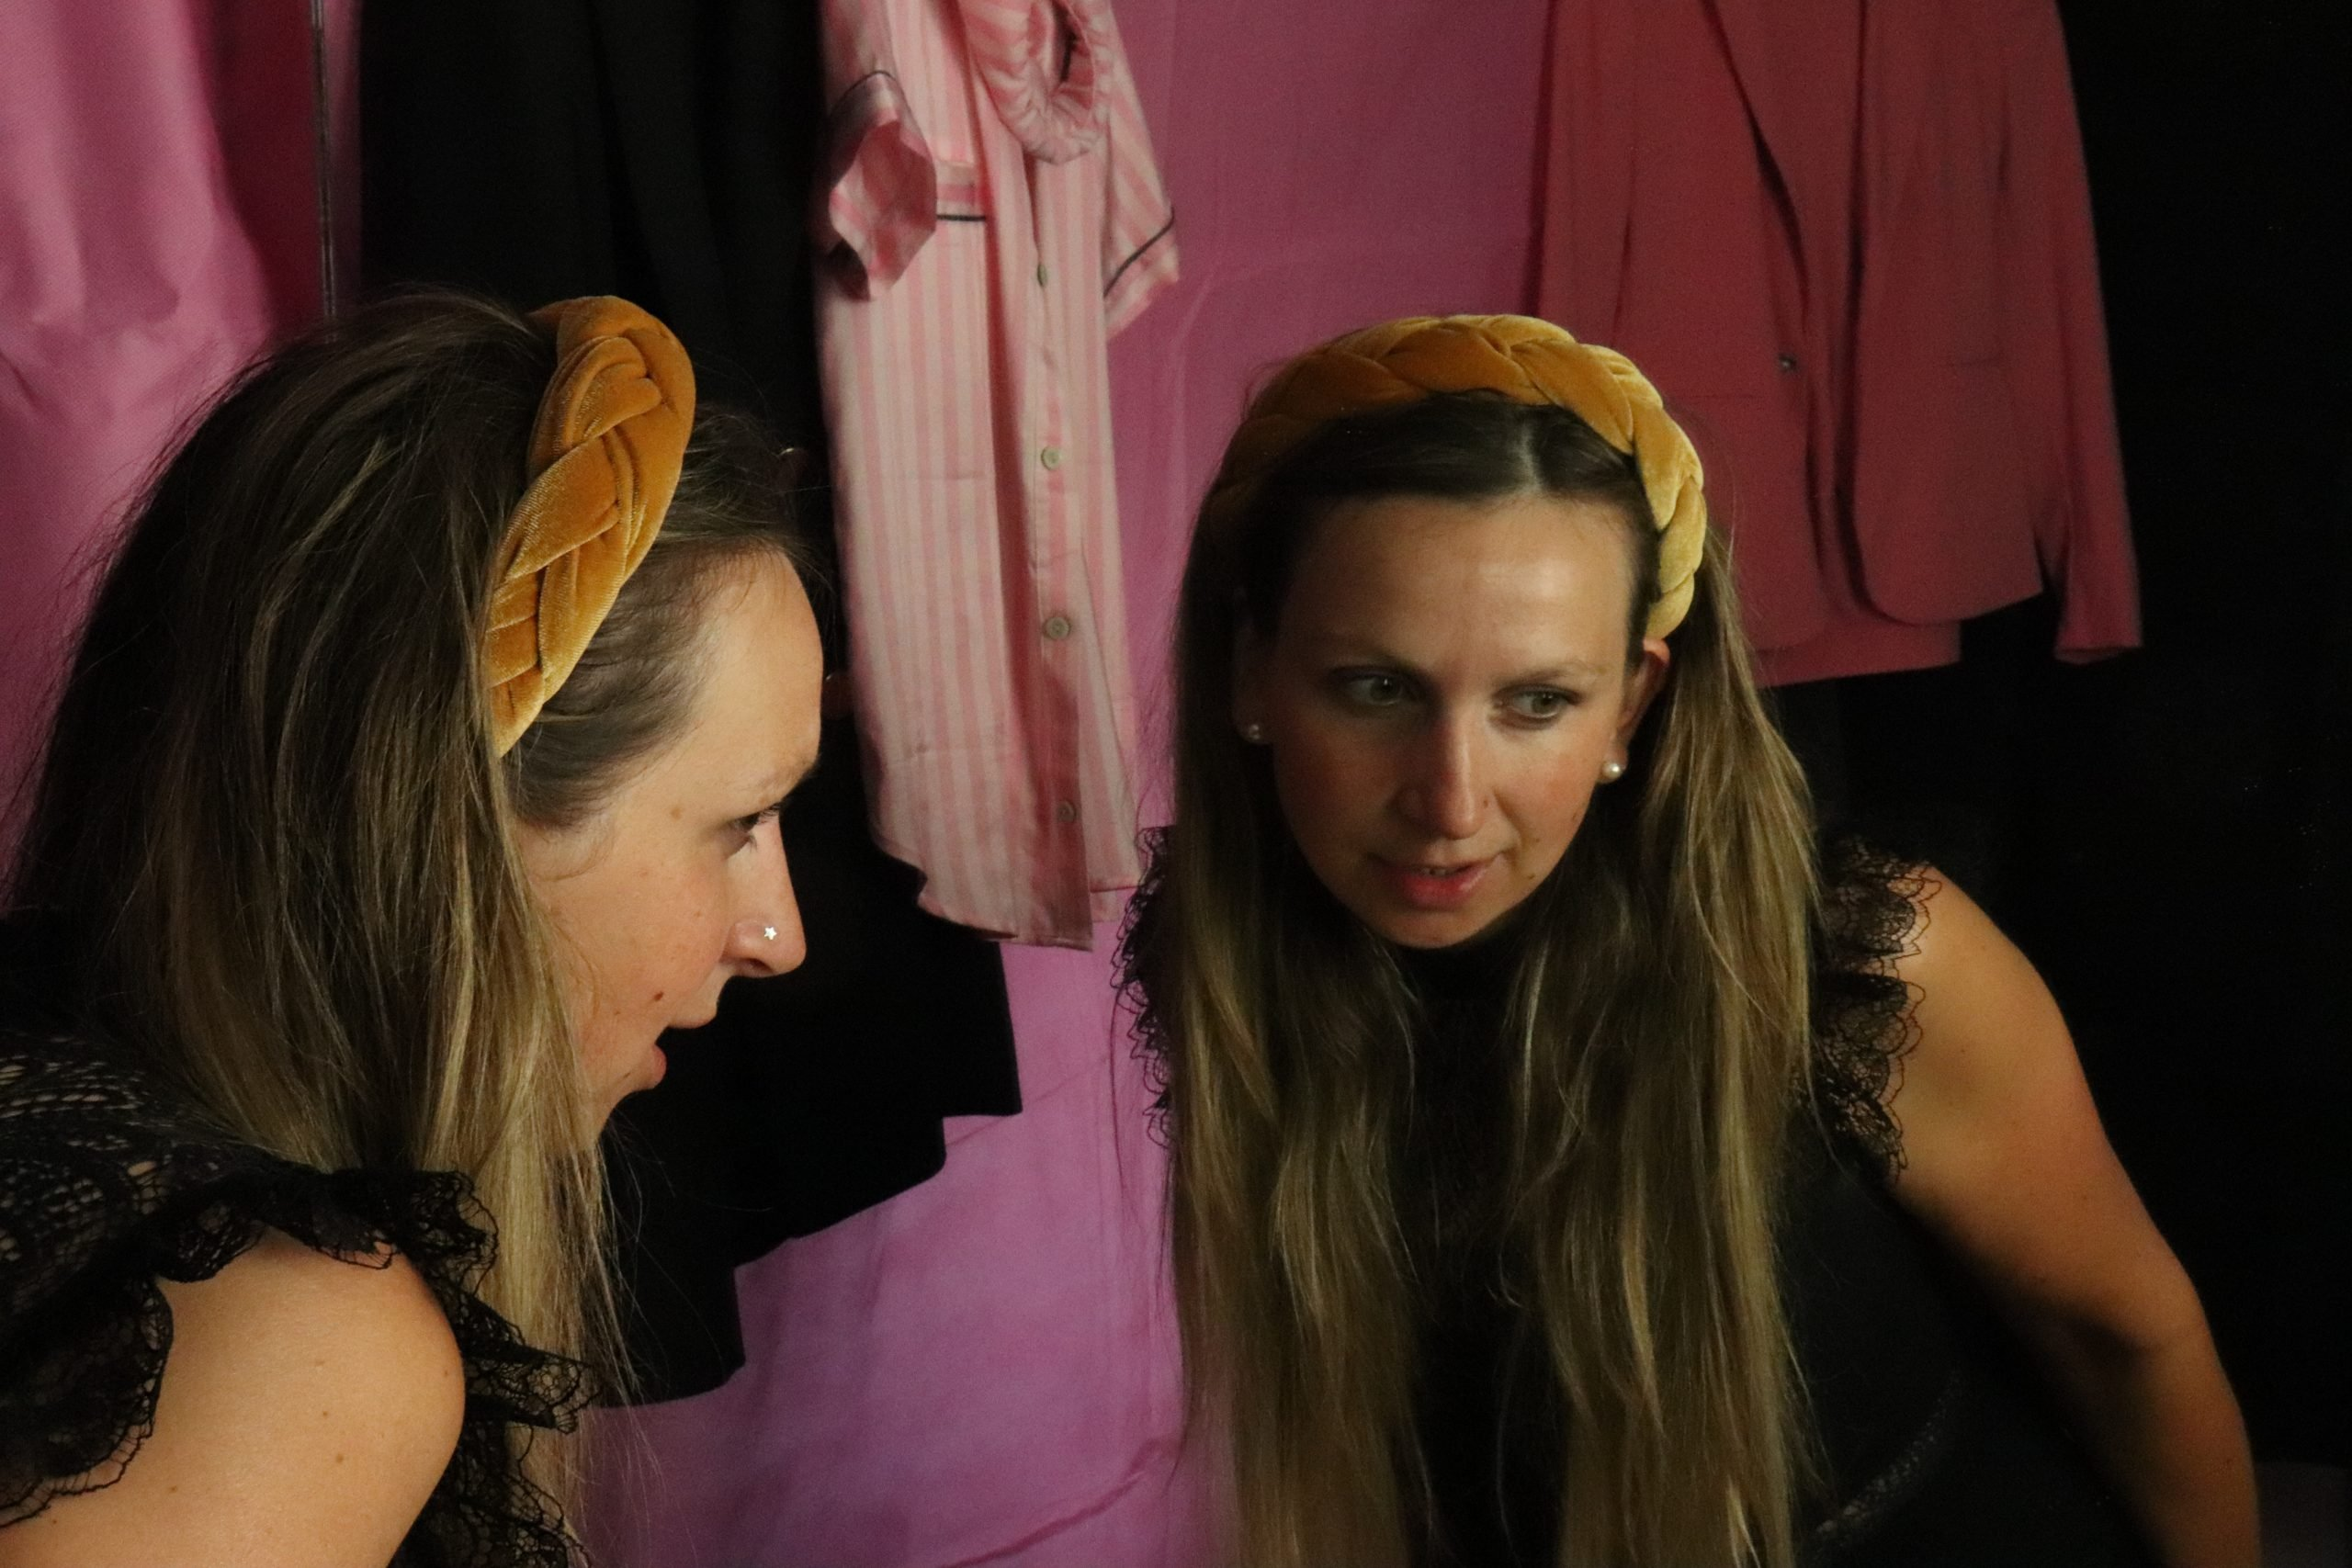 haarband hair band gold maje playsuit make-up mirror picture fotografie studio photography